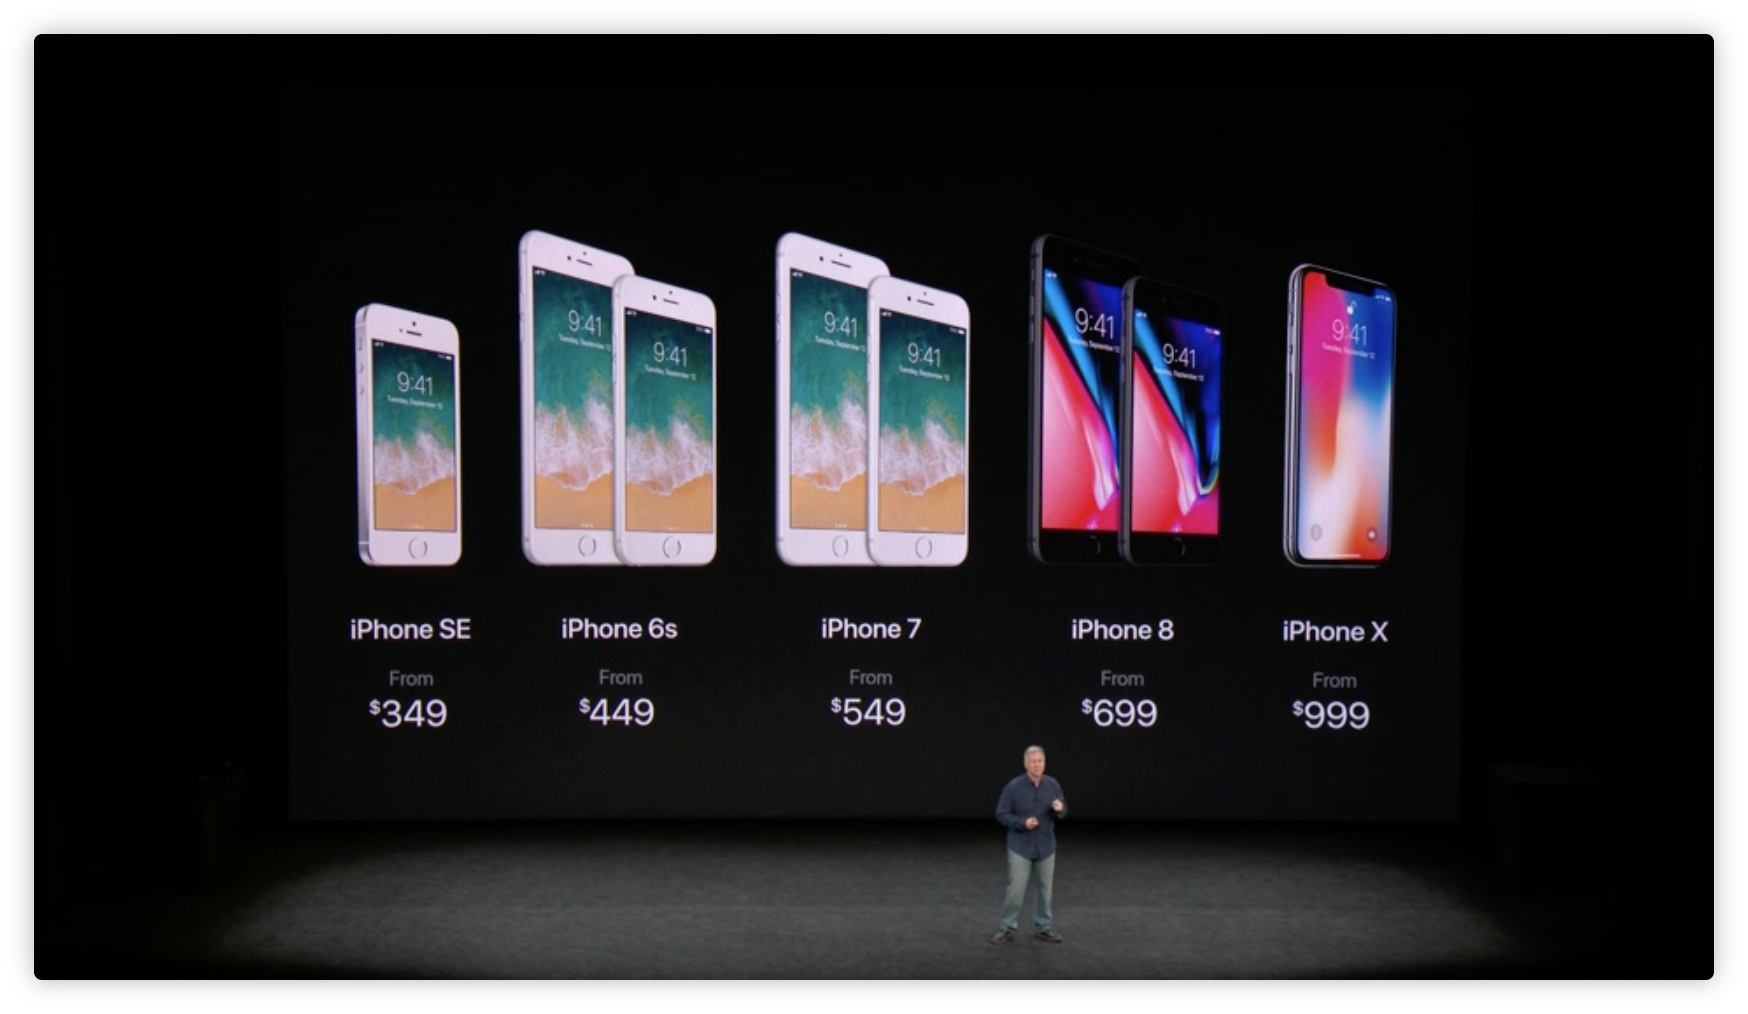 iPhone_X_Presentation_24.png